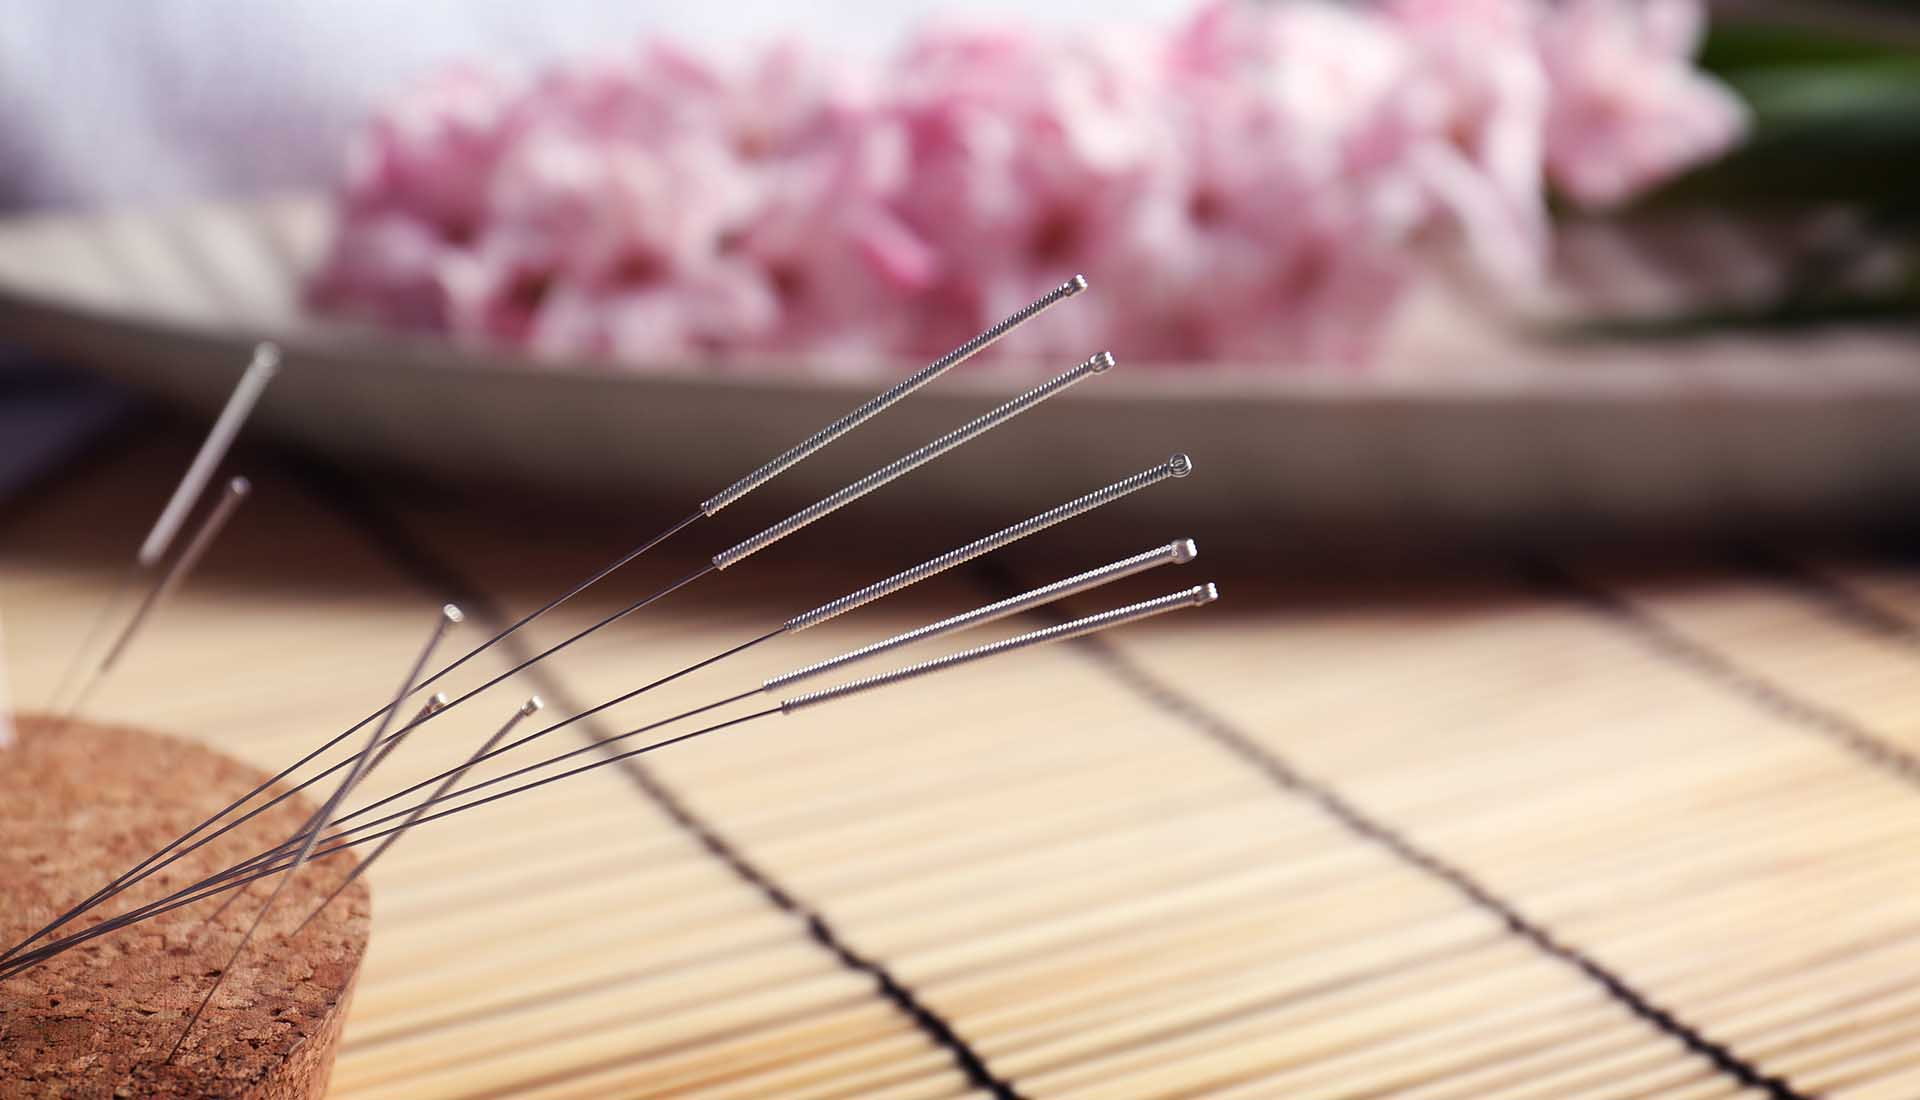 Acupuncture needles inserted into cork.